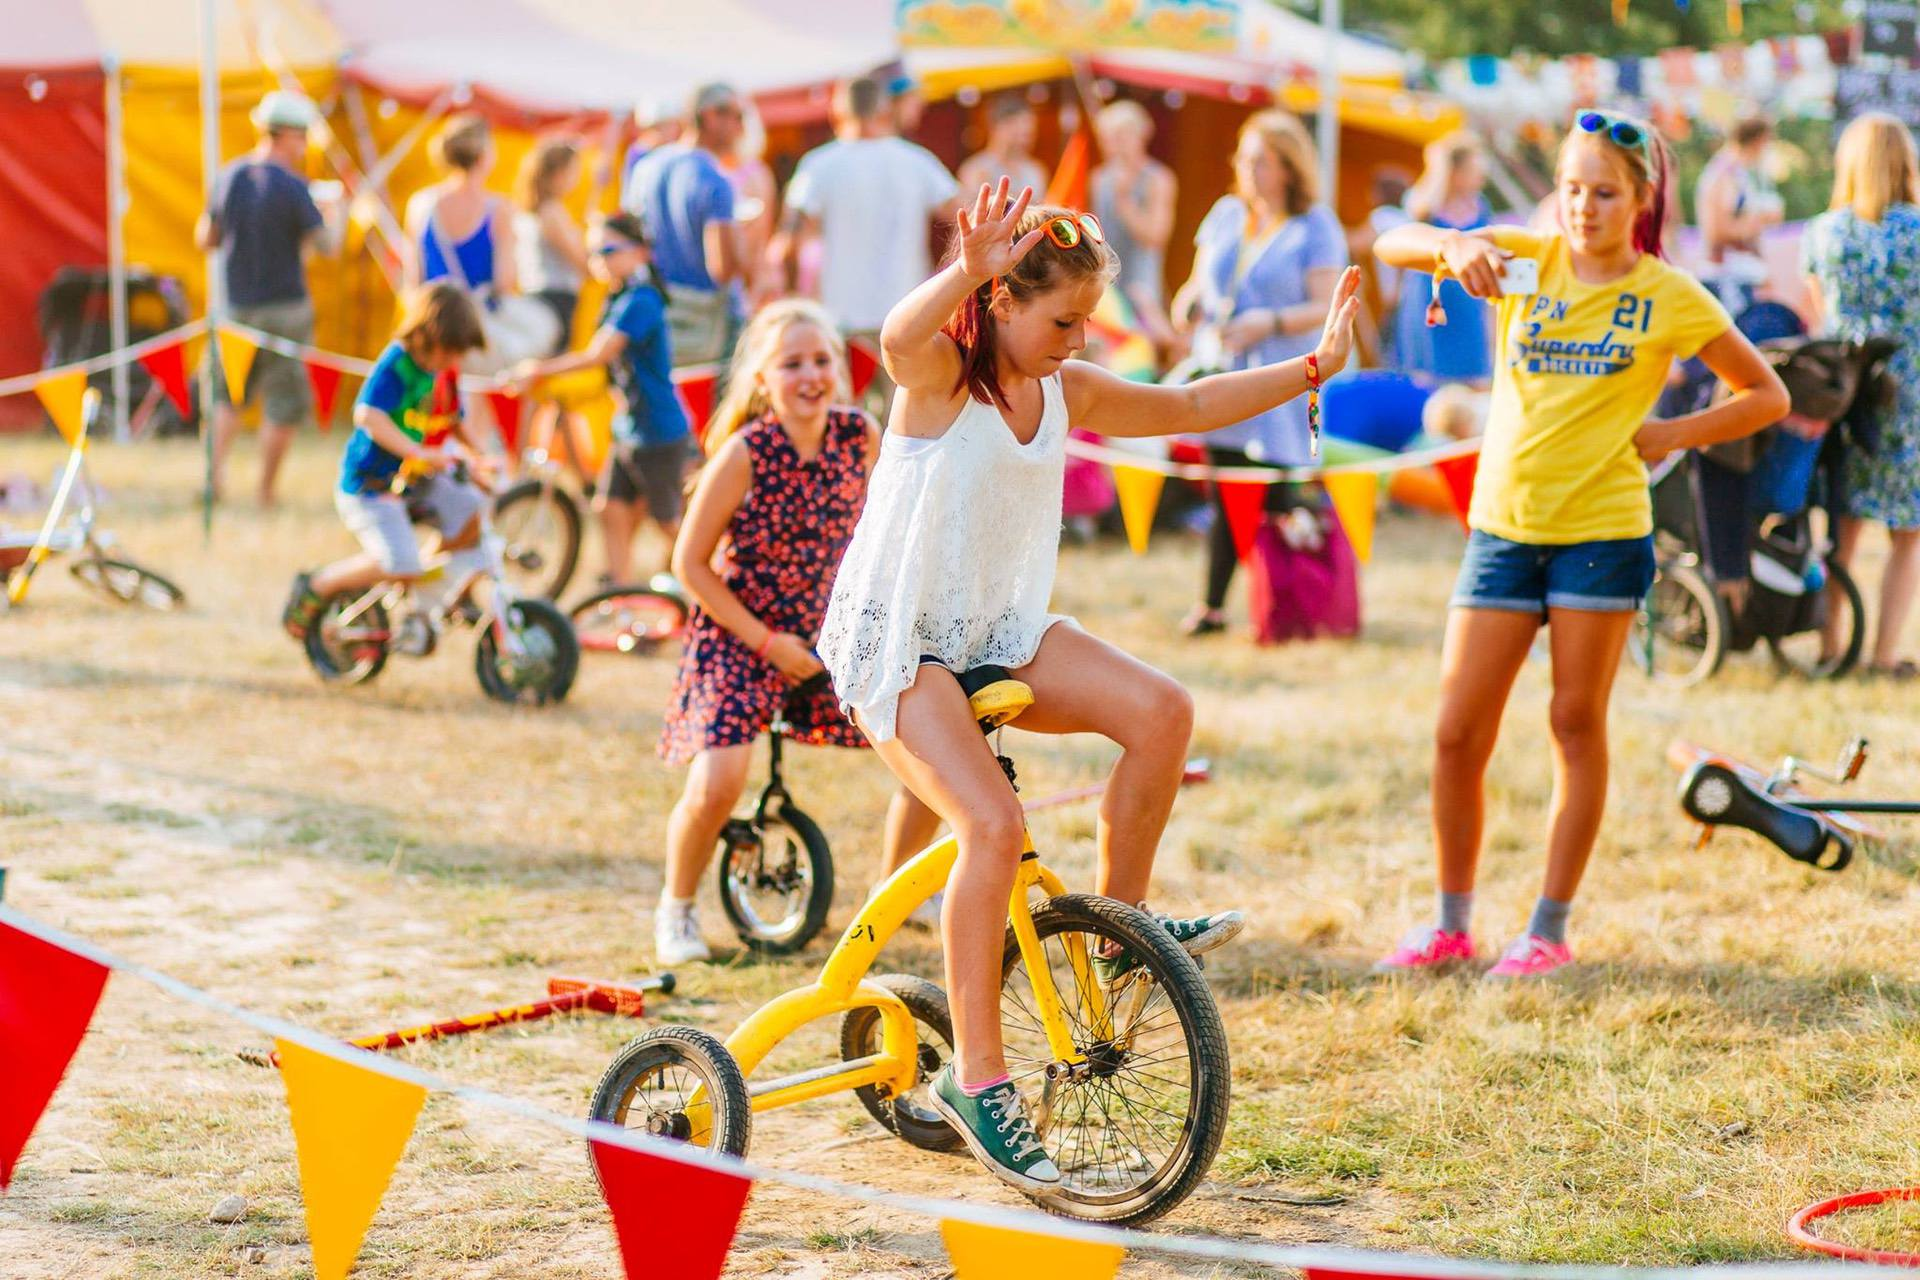 Crazy bikes at the best festival event childrens entertainment area supplier in the uk